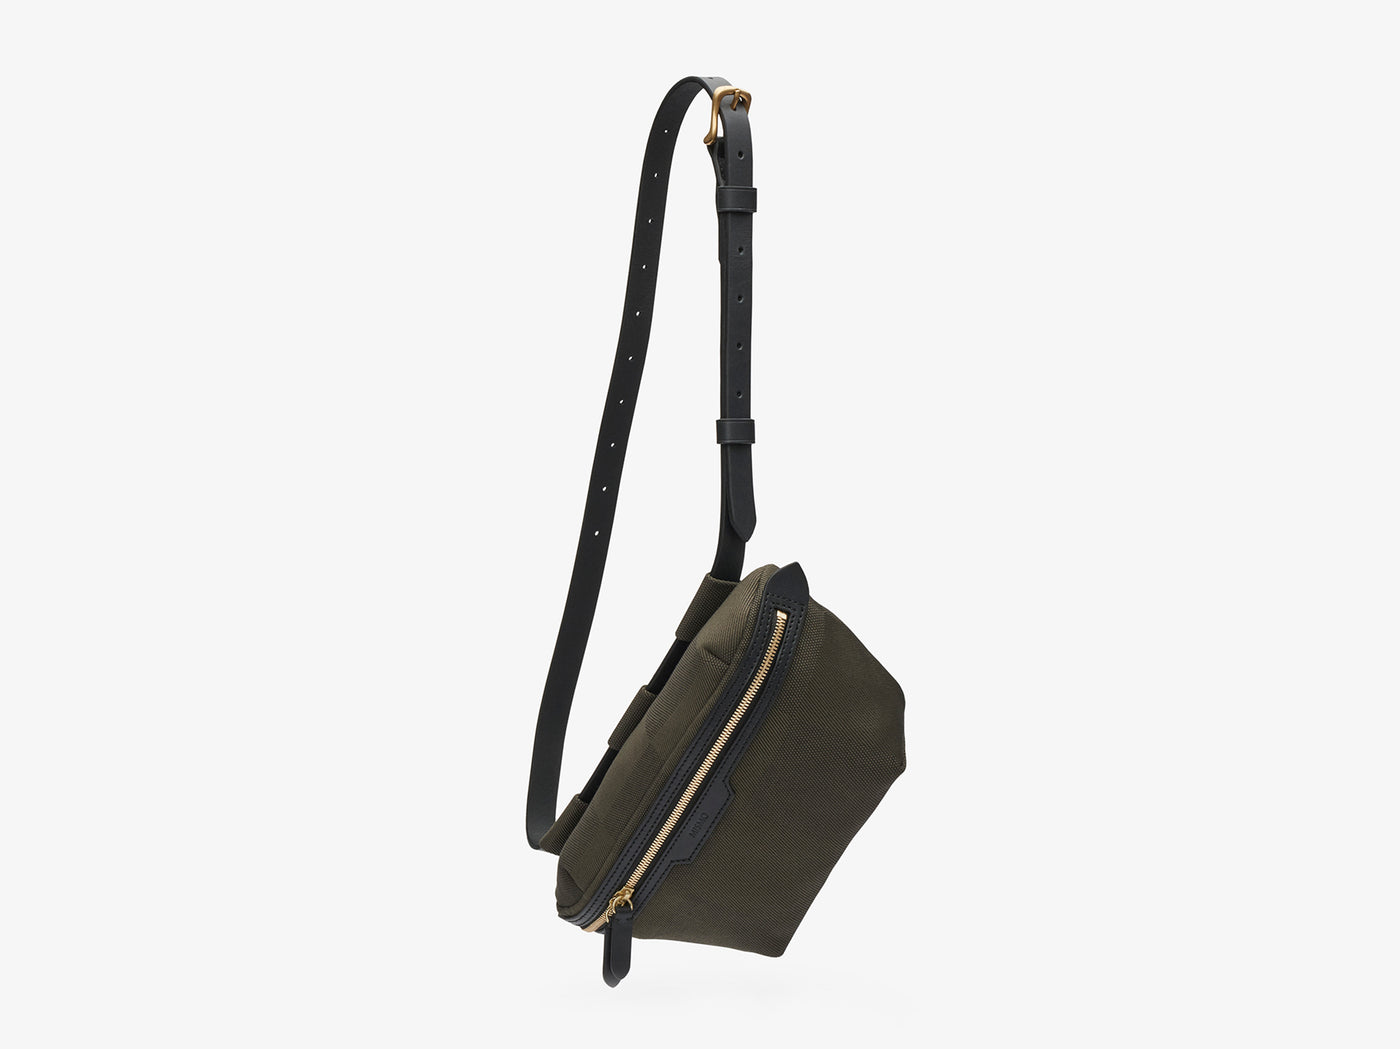 M/S Belt Bag - King's Green/Black